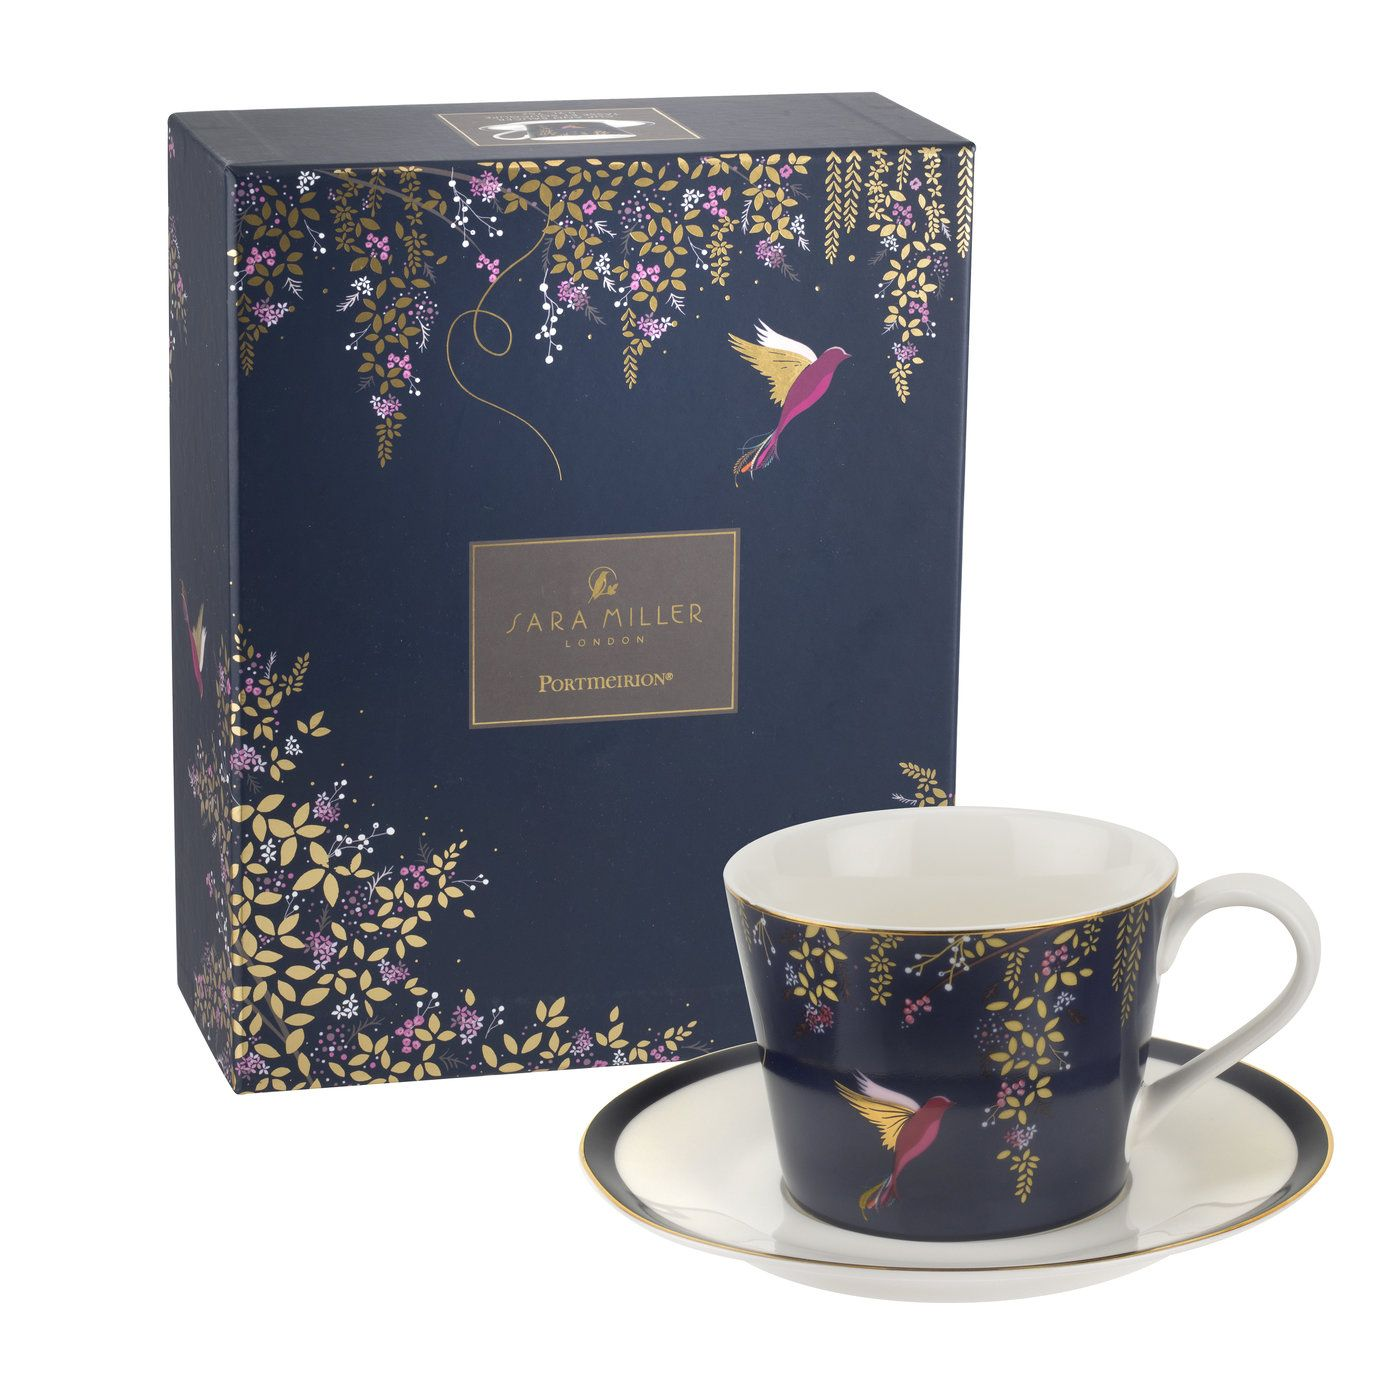 Sara Miller London for Portmeirion Chelsea Collection Teacup & Saucer Navy 0.2l thumb 2